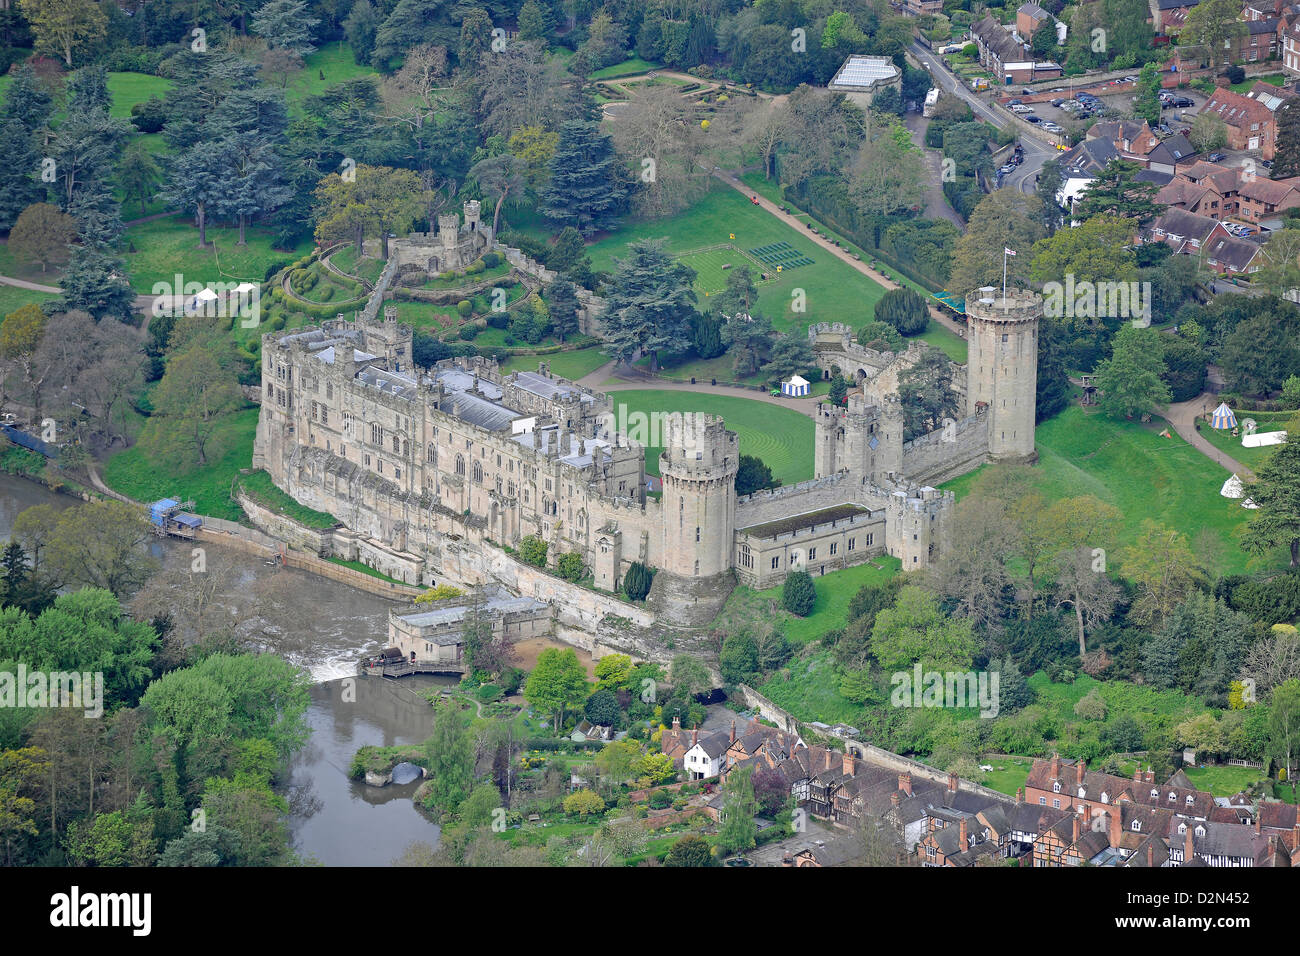 Aerial photograph of Warwick Castle - Stock Image